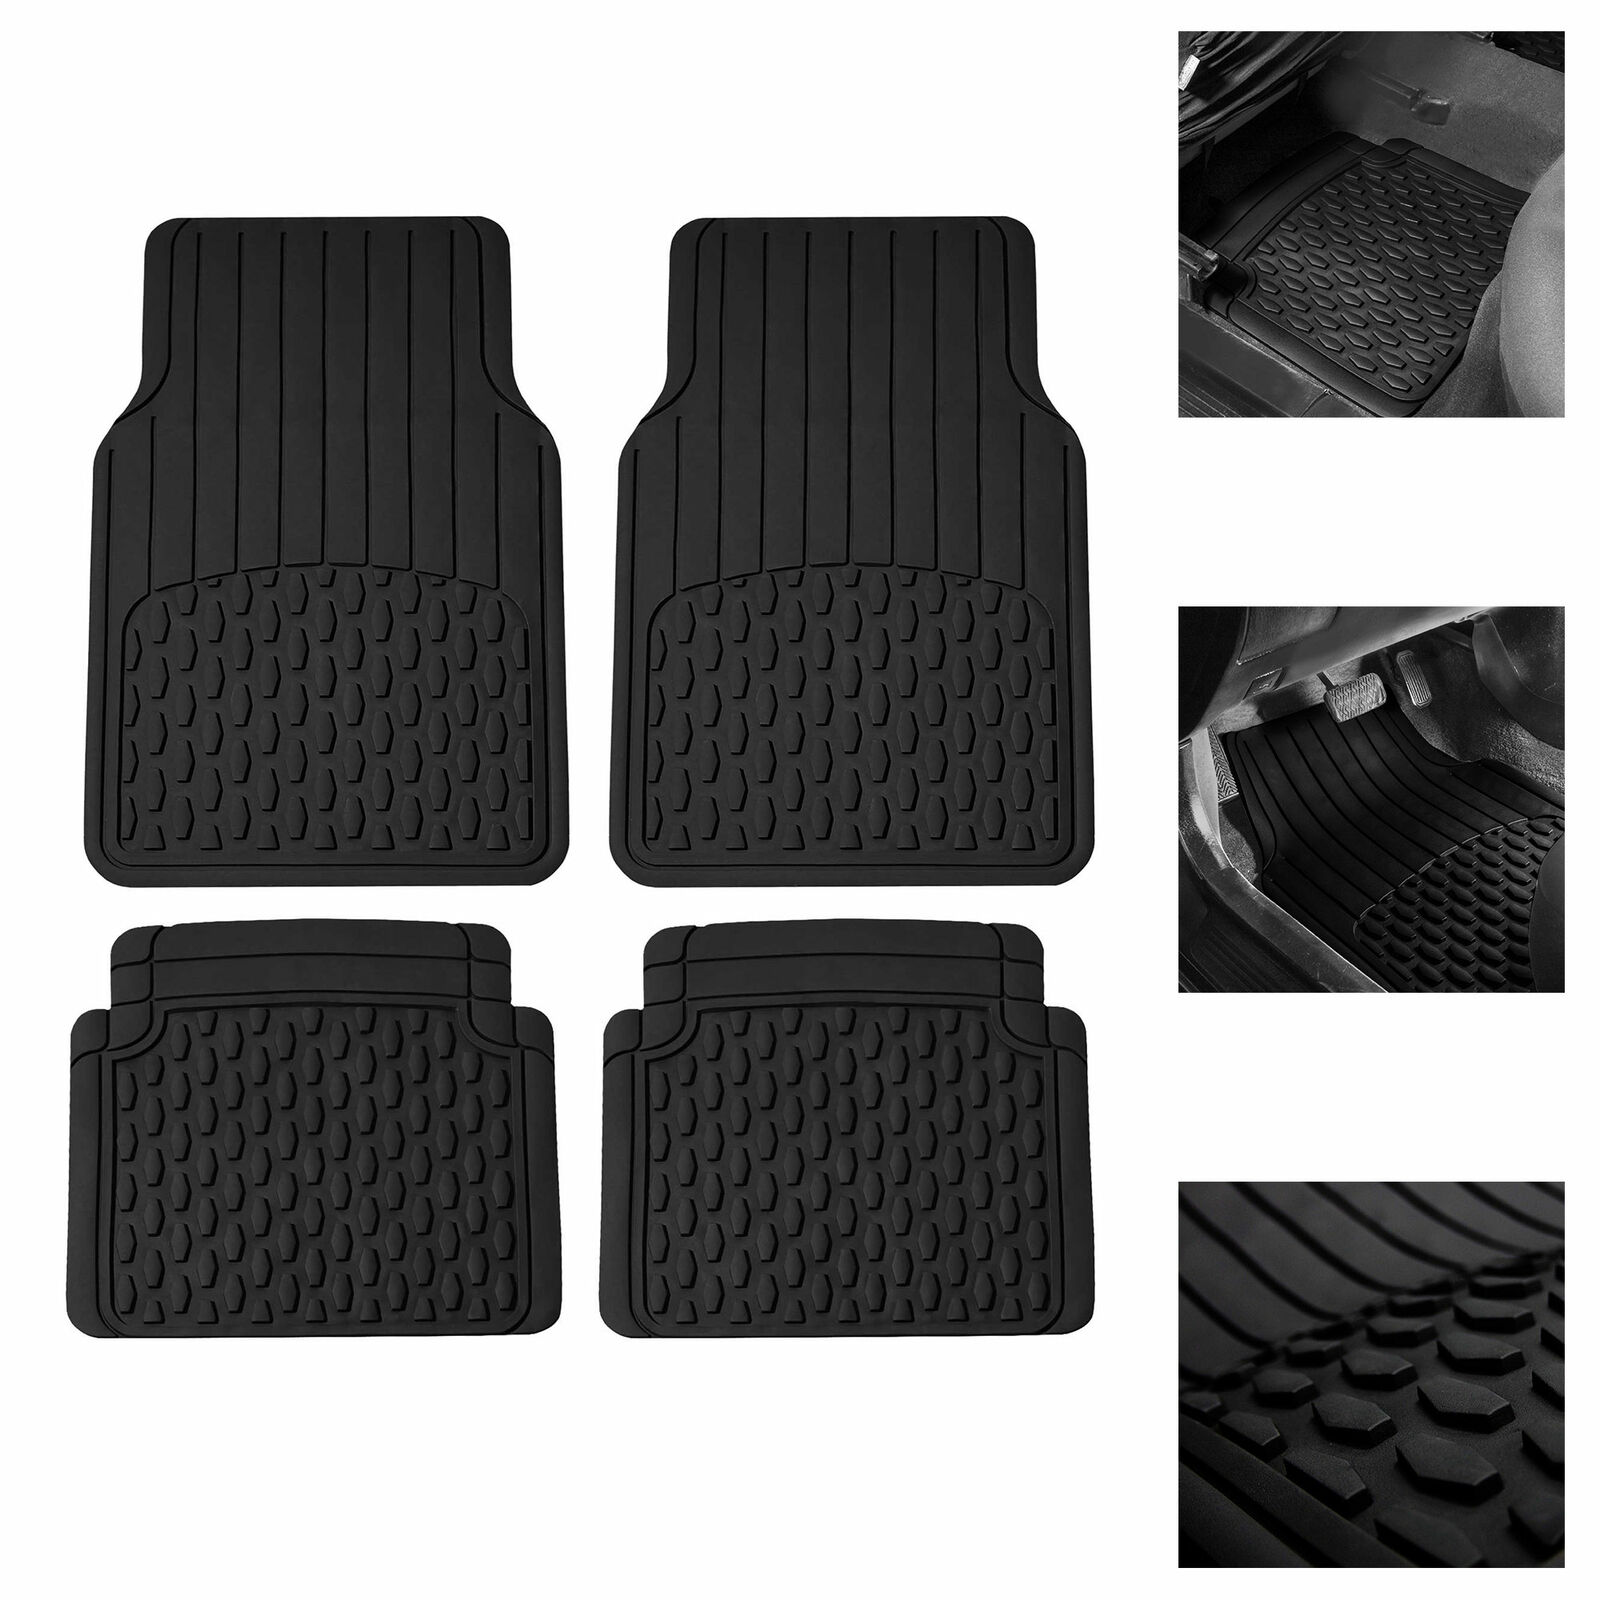 Caterpillar CAT Large Heavy Duty Odorless Rubber Floor Mats Black All Weather Total Protection Durable Trim to Fit Liners for Car Truck SUV /& Van CAMT-150-BK